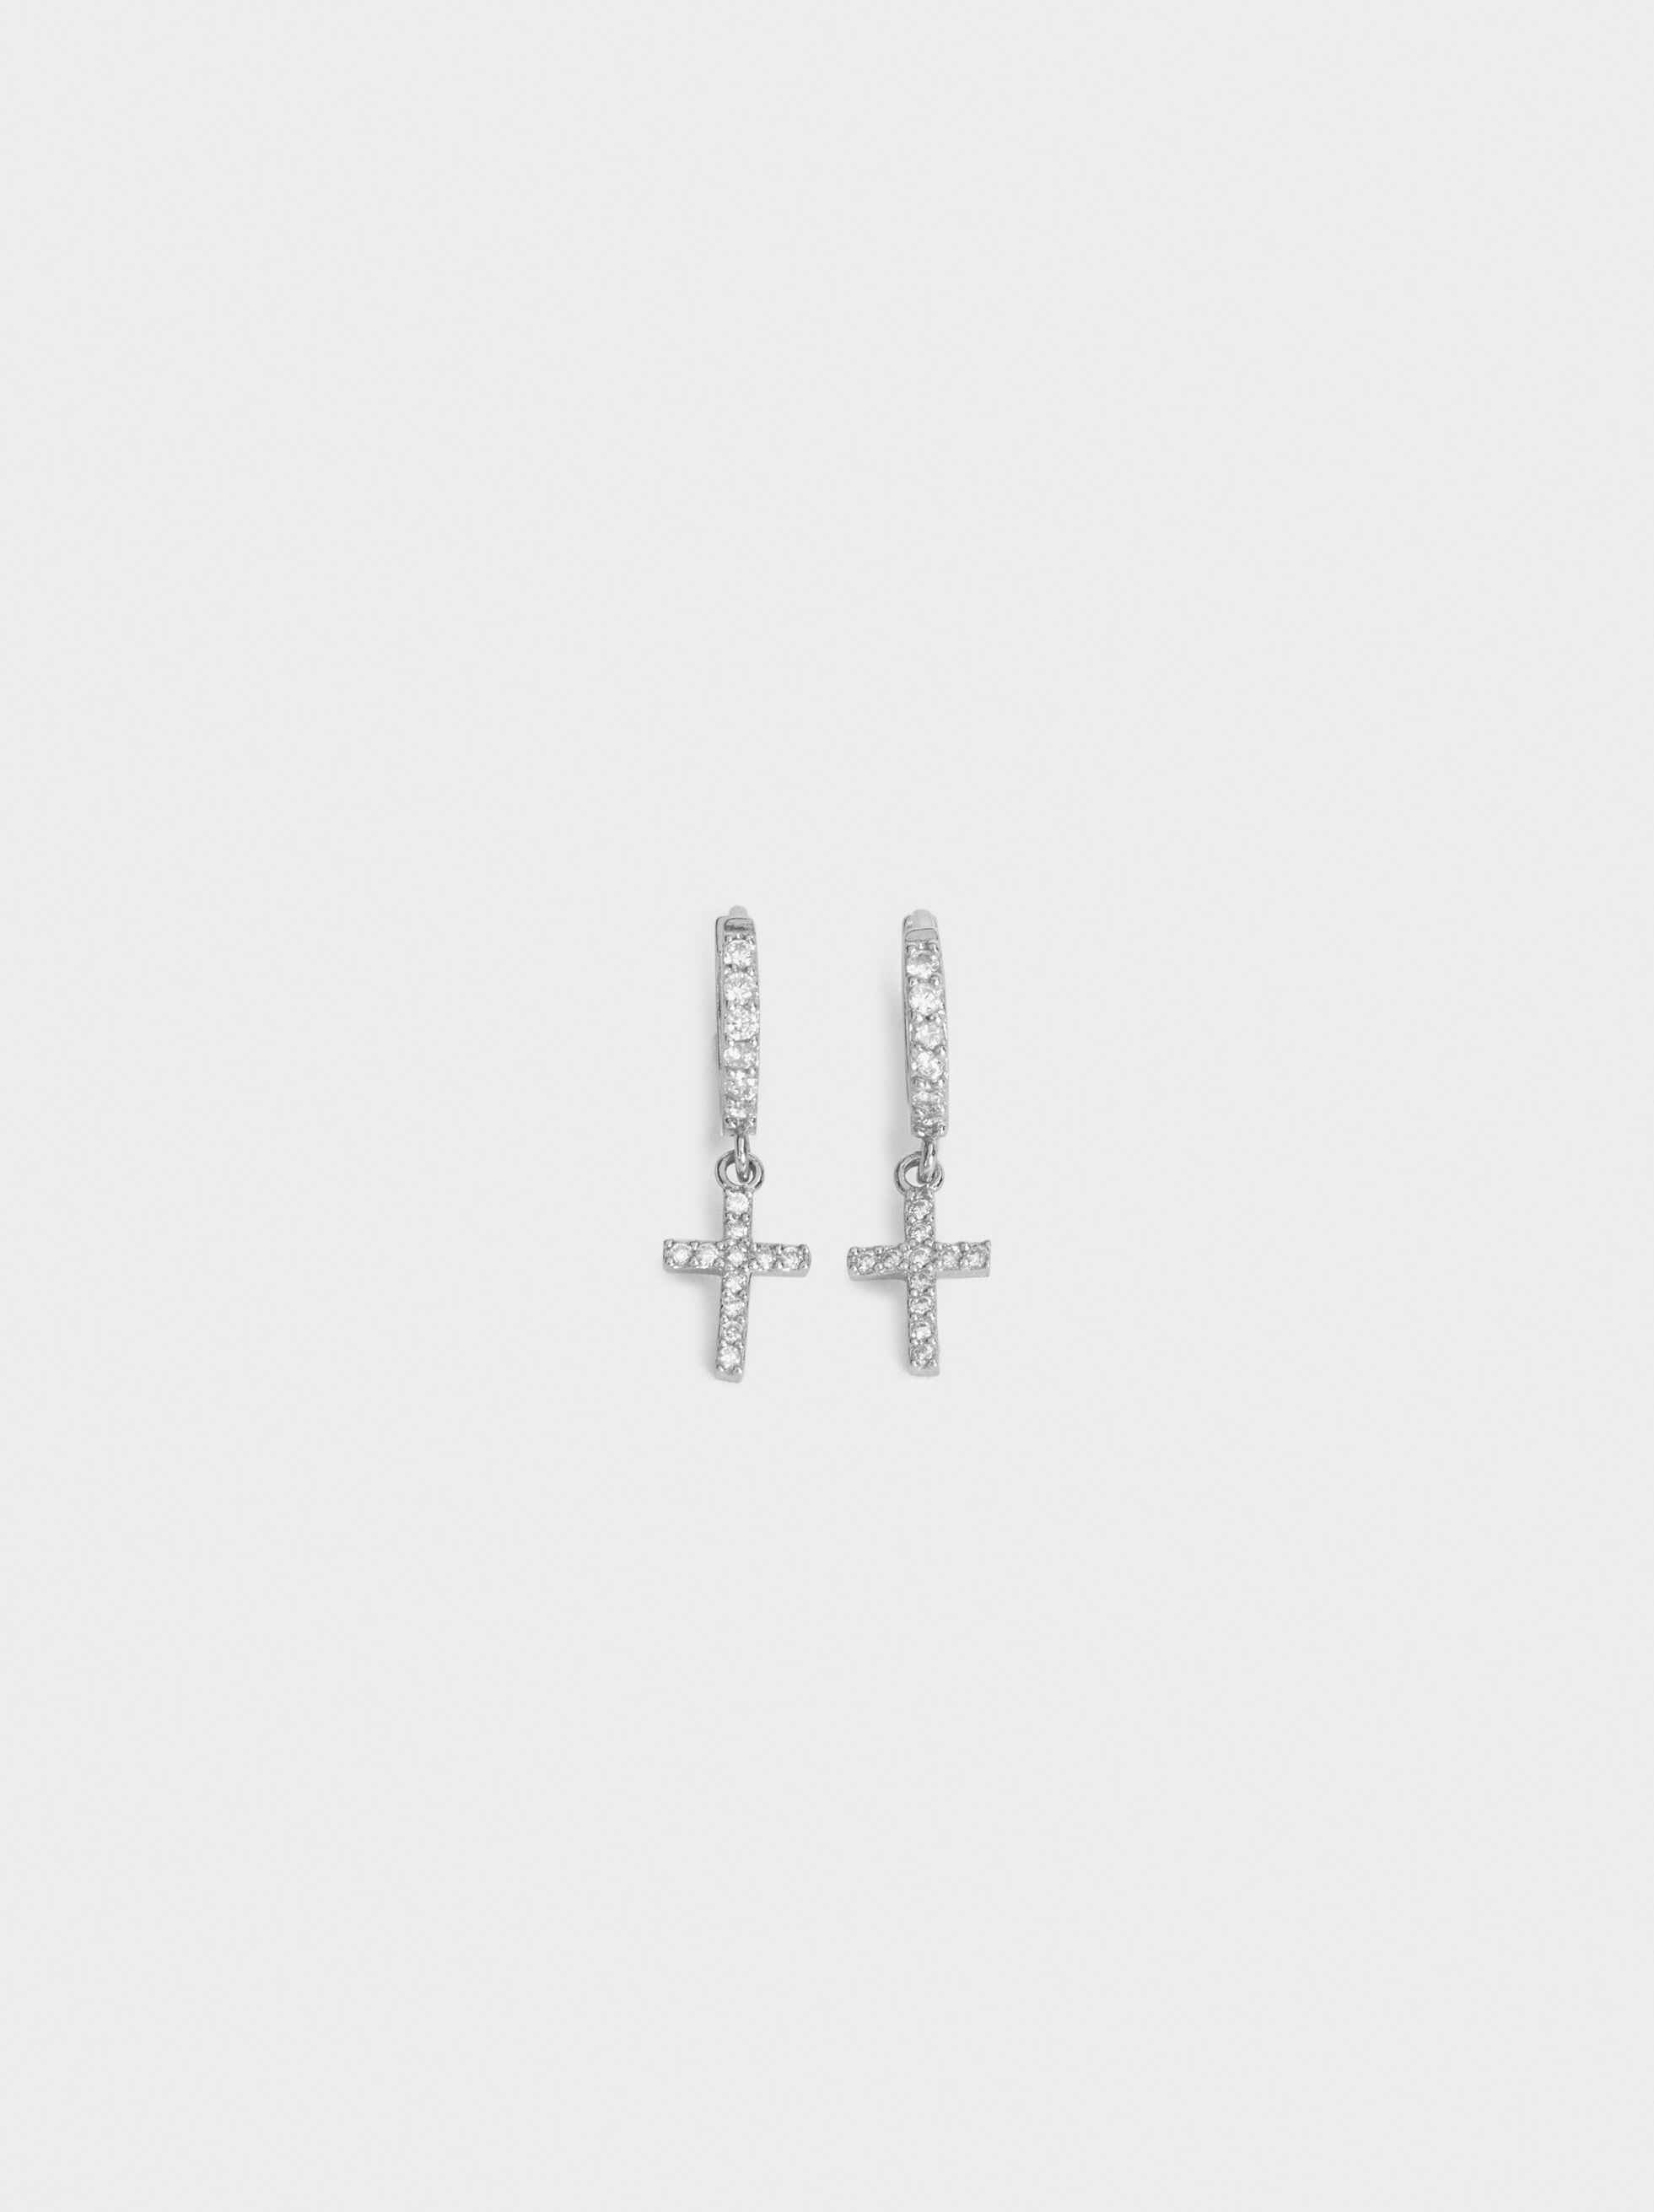 Small 925 Silver Hoop Earrings With Cross, Silver, hi-res